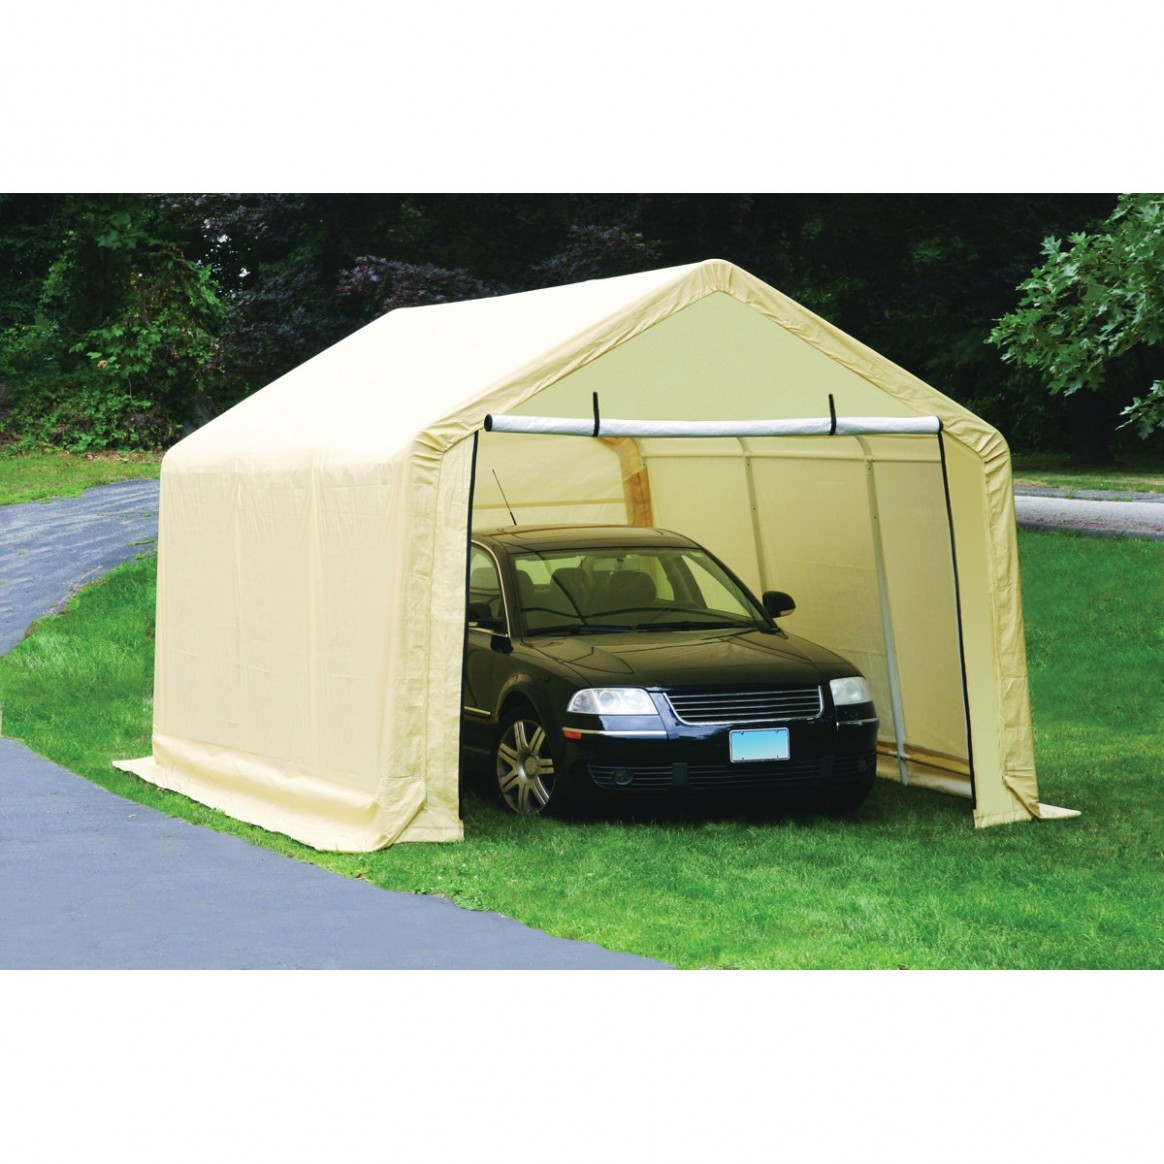 1517750210-outdoor-shed-in-a-box-lowes-portable-garage-lowes-cheap-carports-temporary-car-shed.jpg